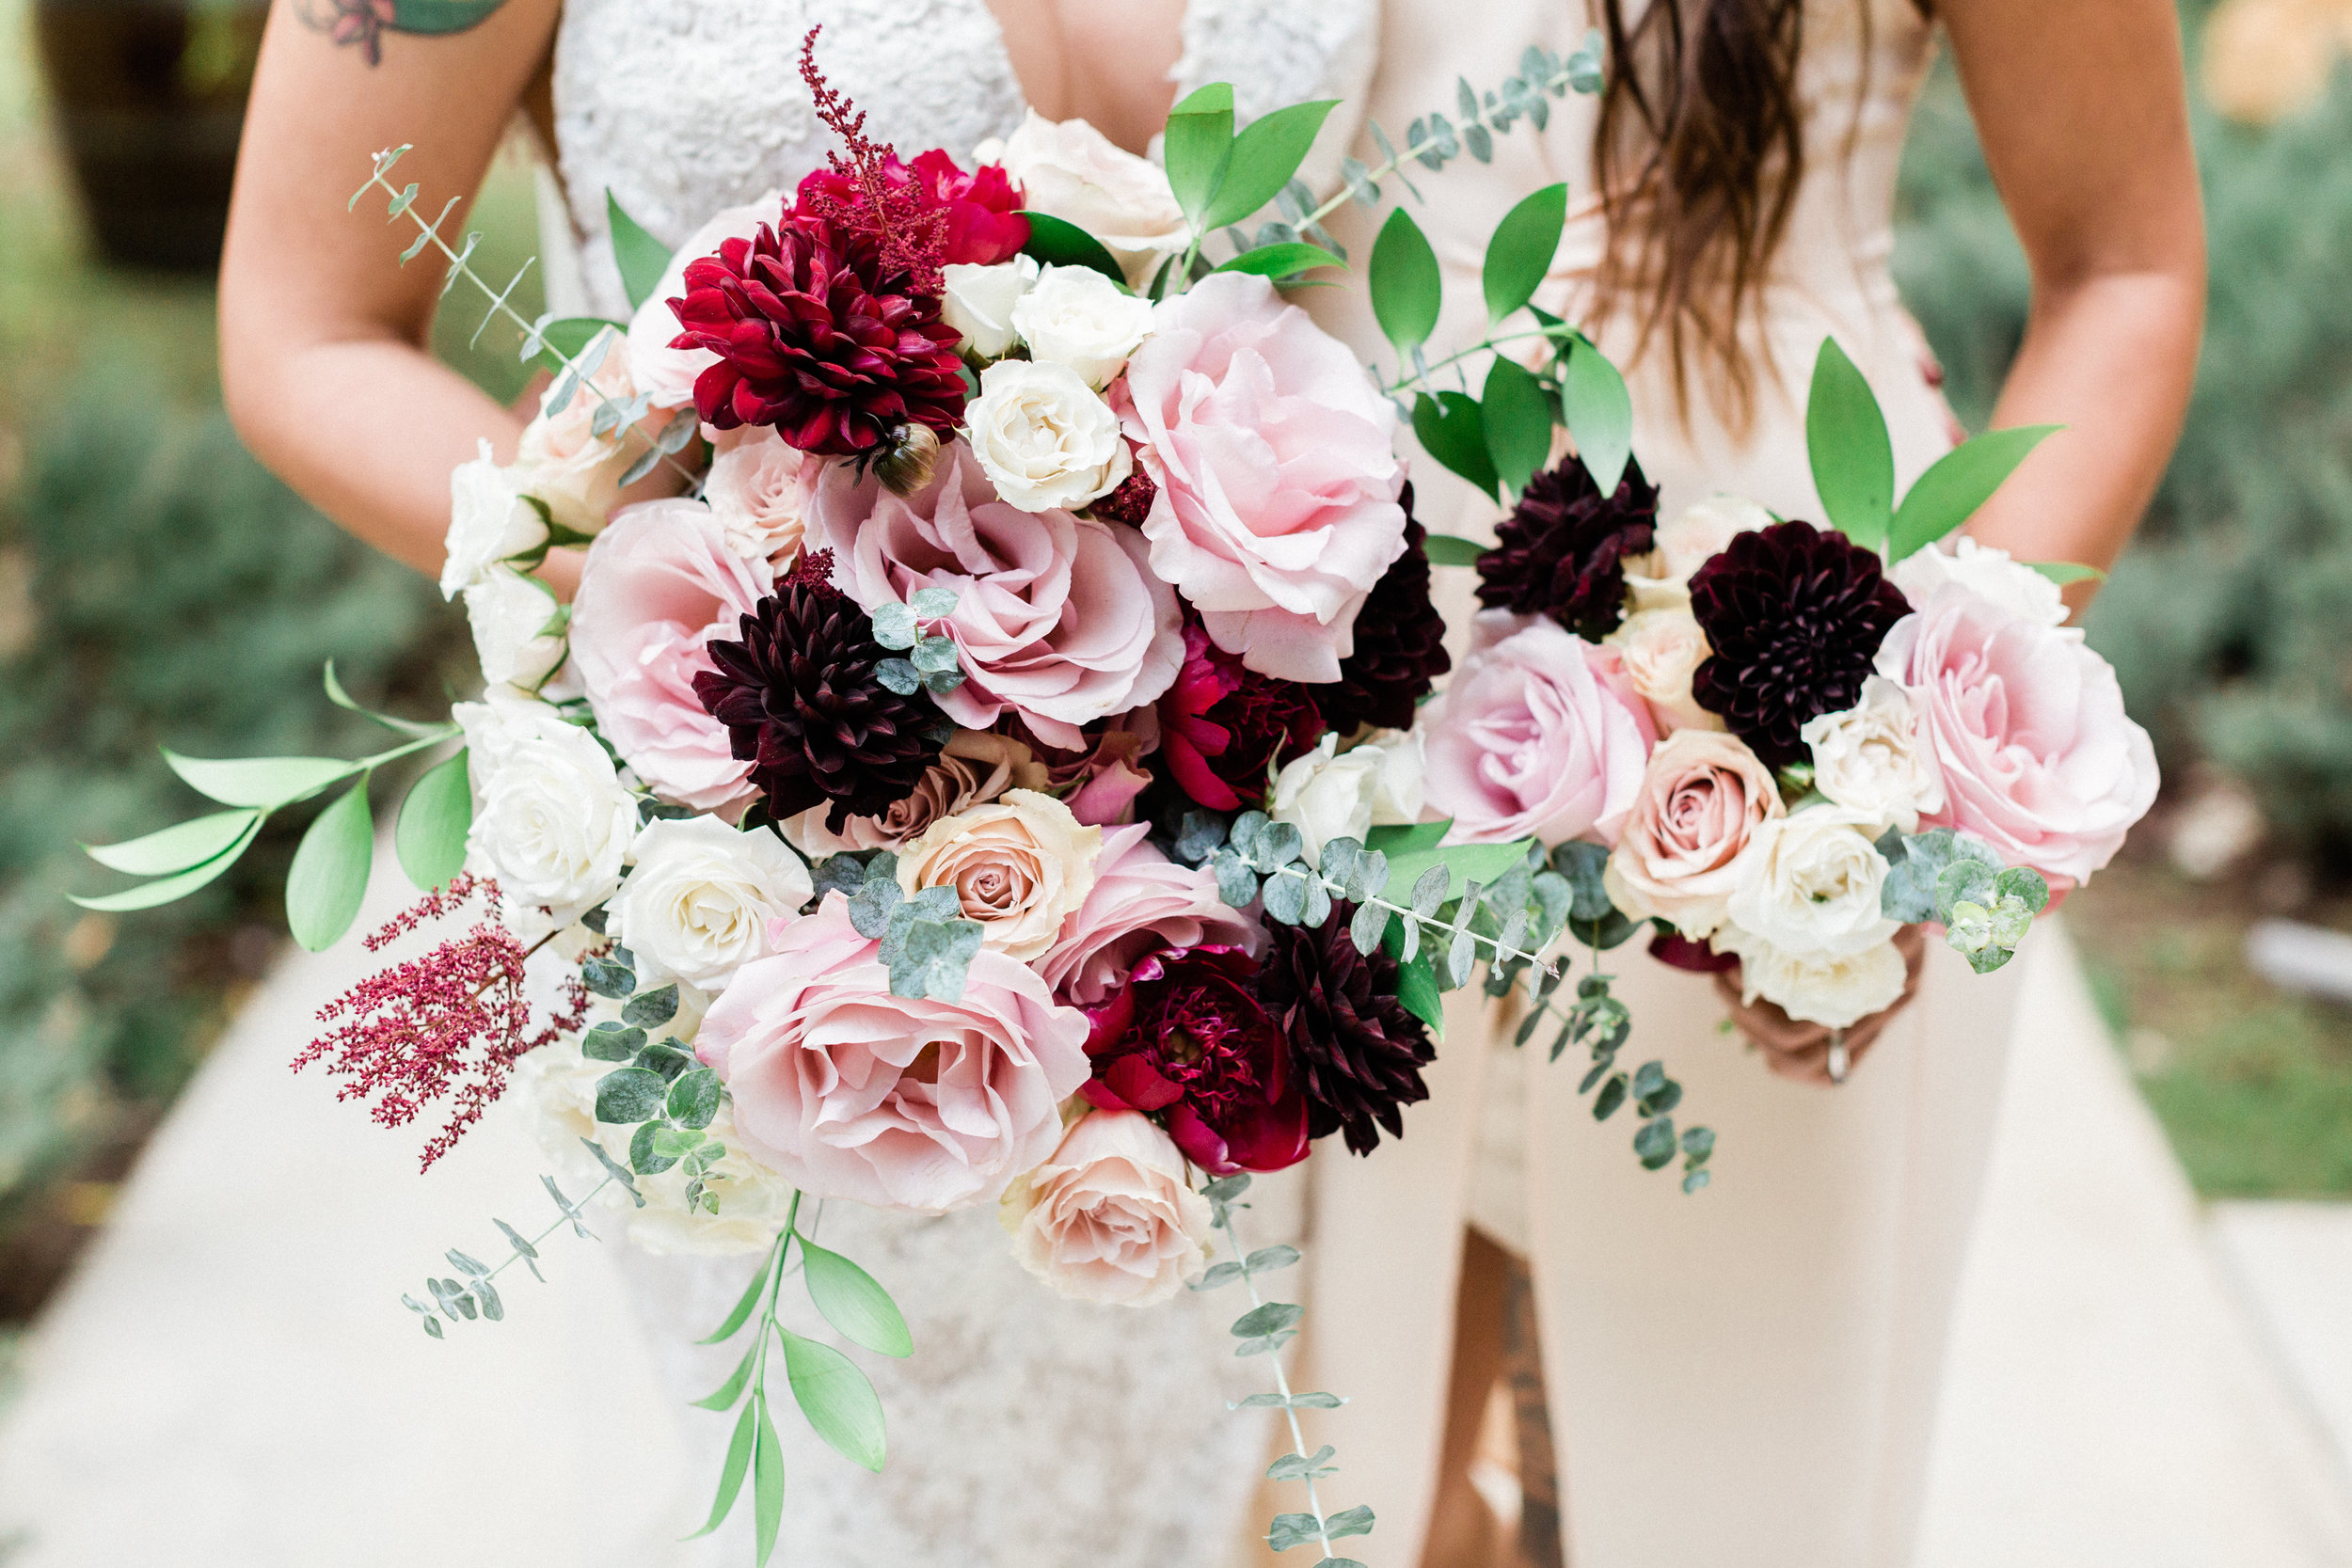 blush and burgandy bride and bridesmaids bouquets.jpg